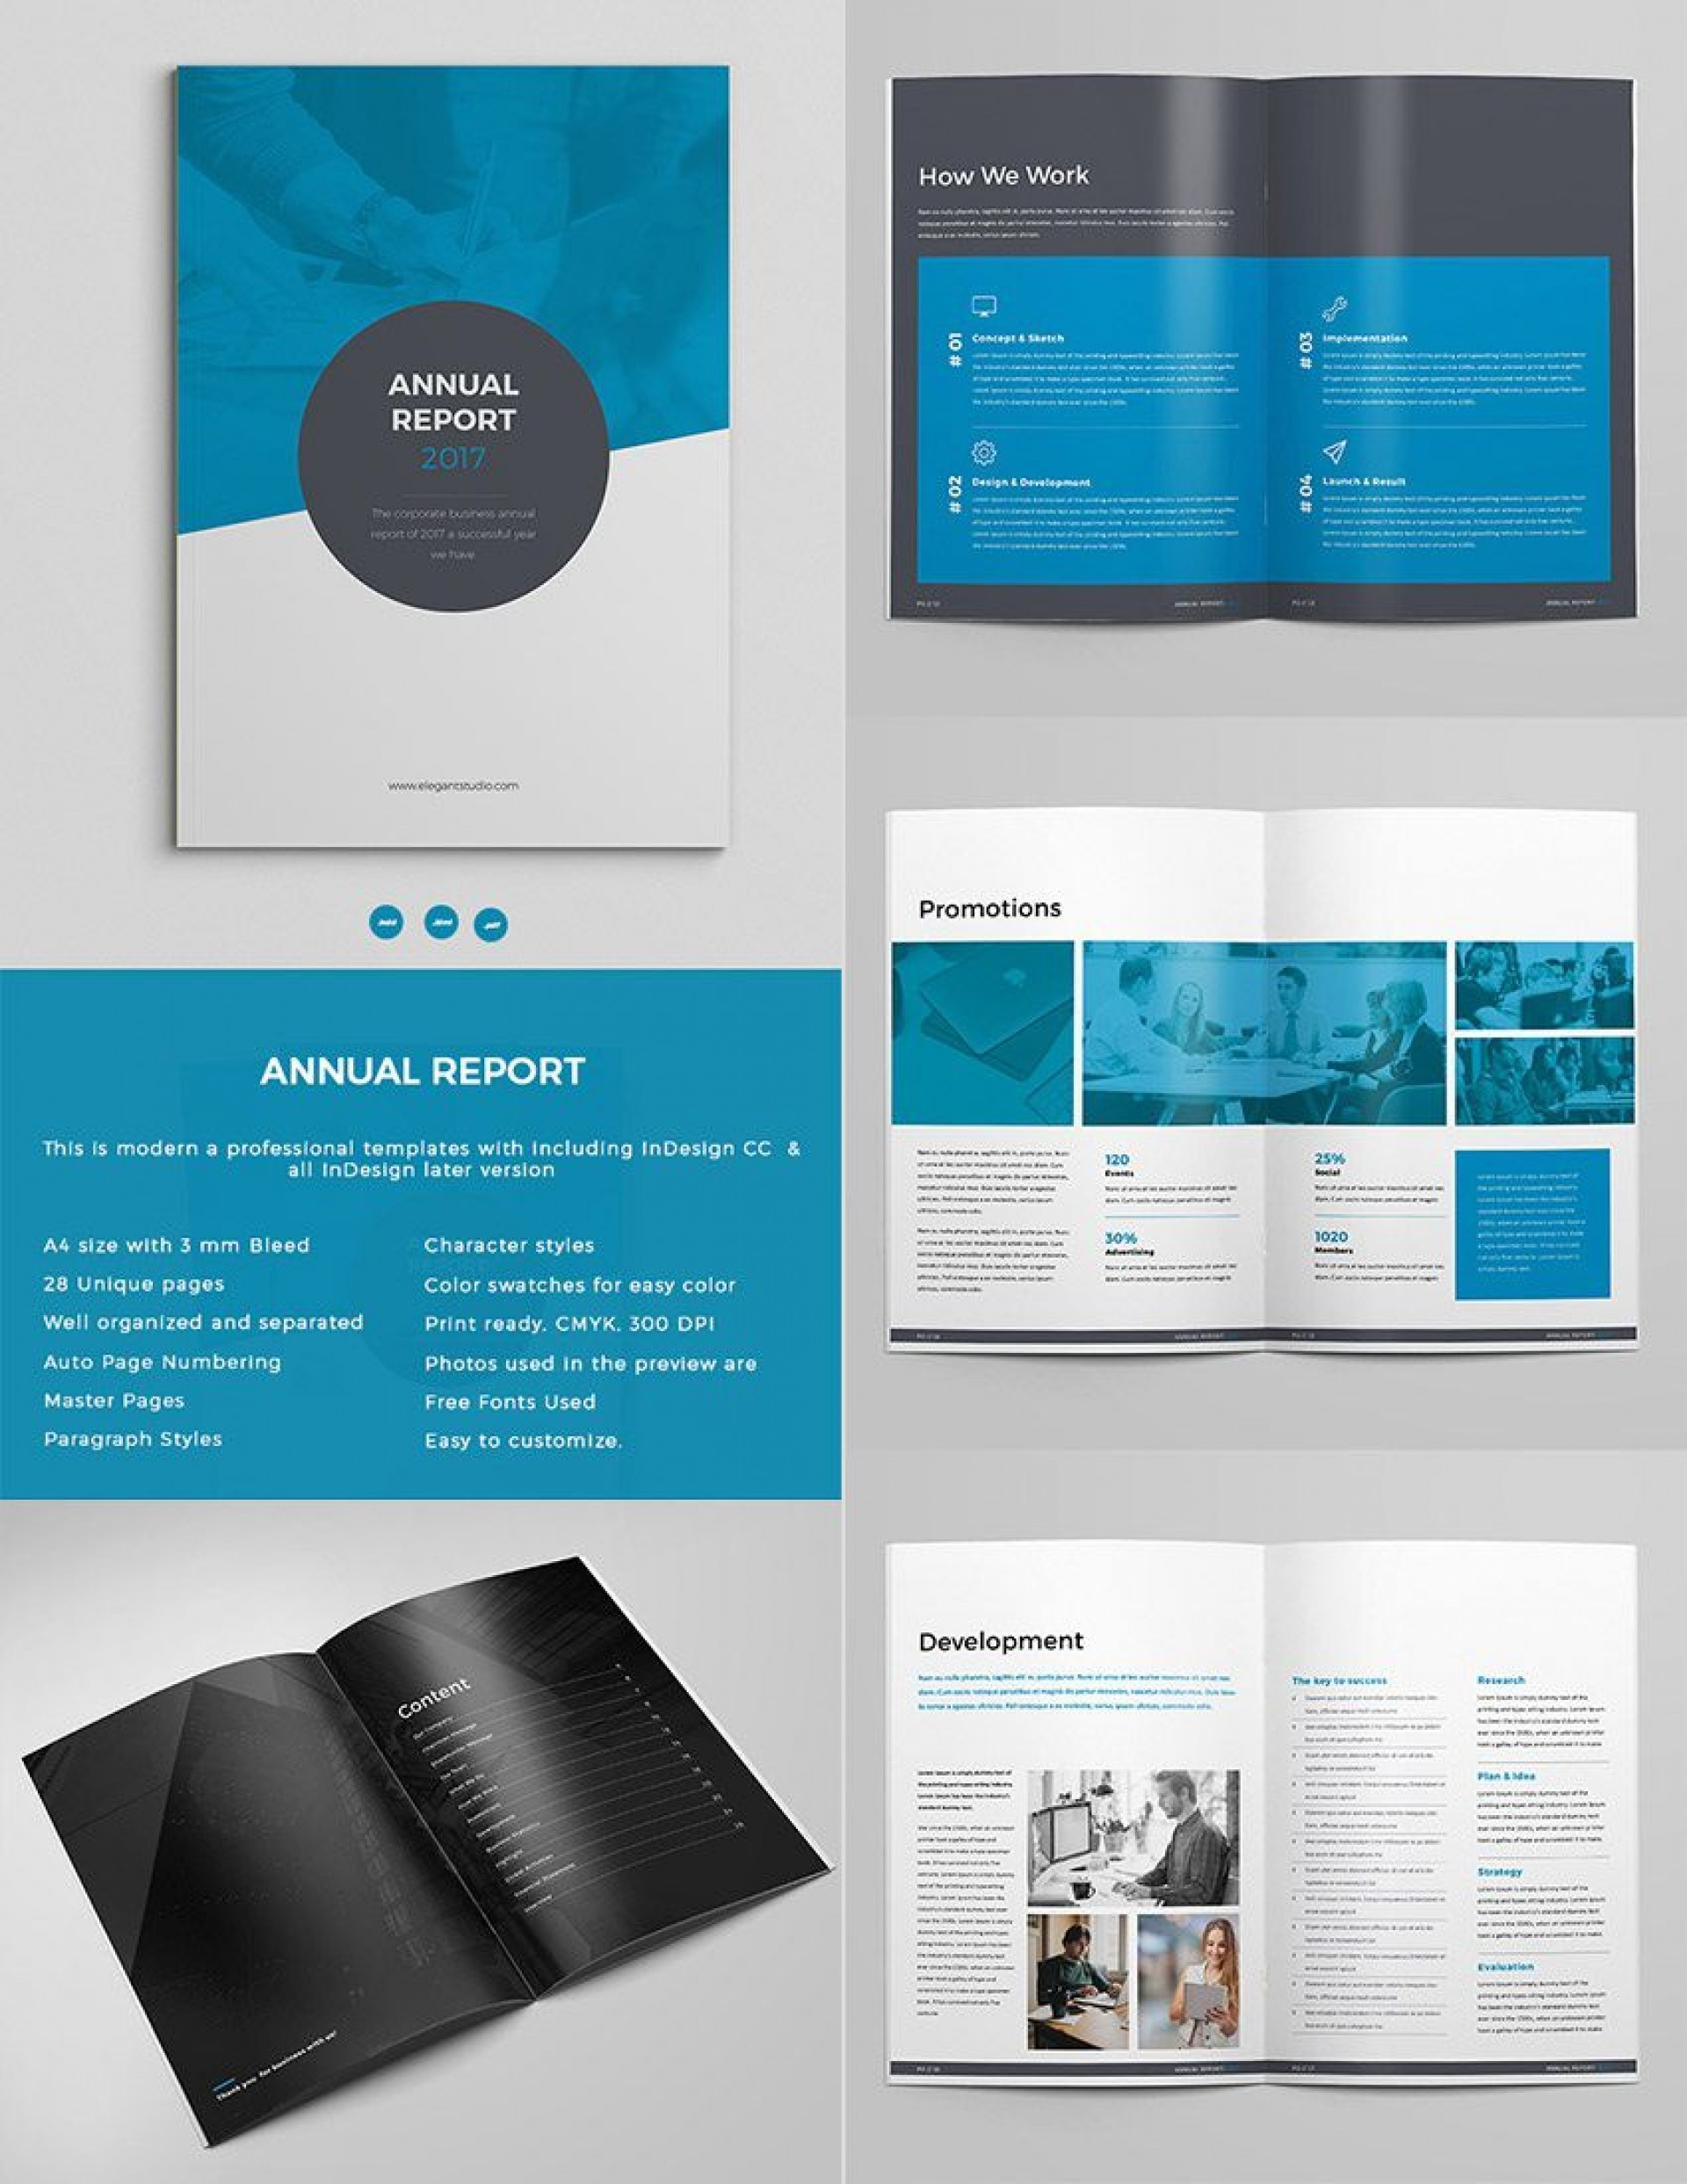 005 Marvelou Free Annual Report Template Indesign Image  Adobe Non Profit1920